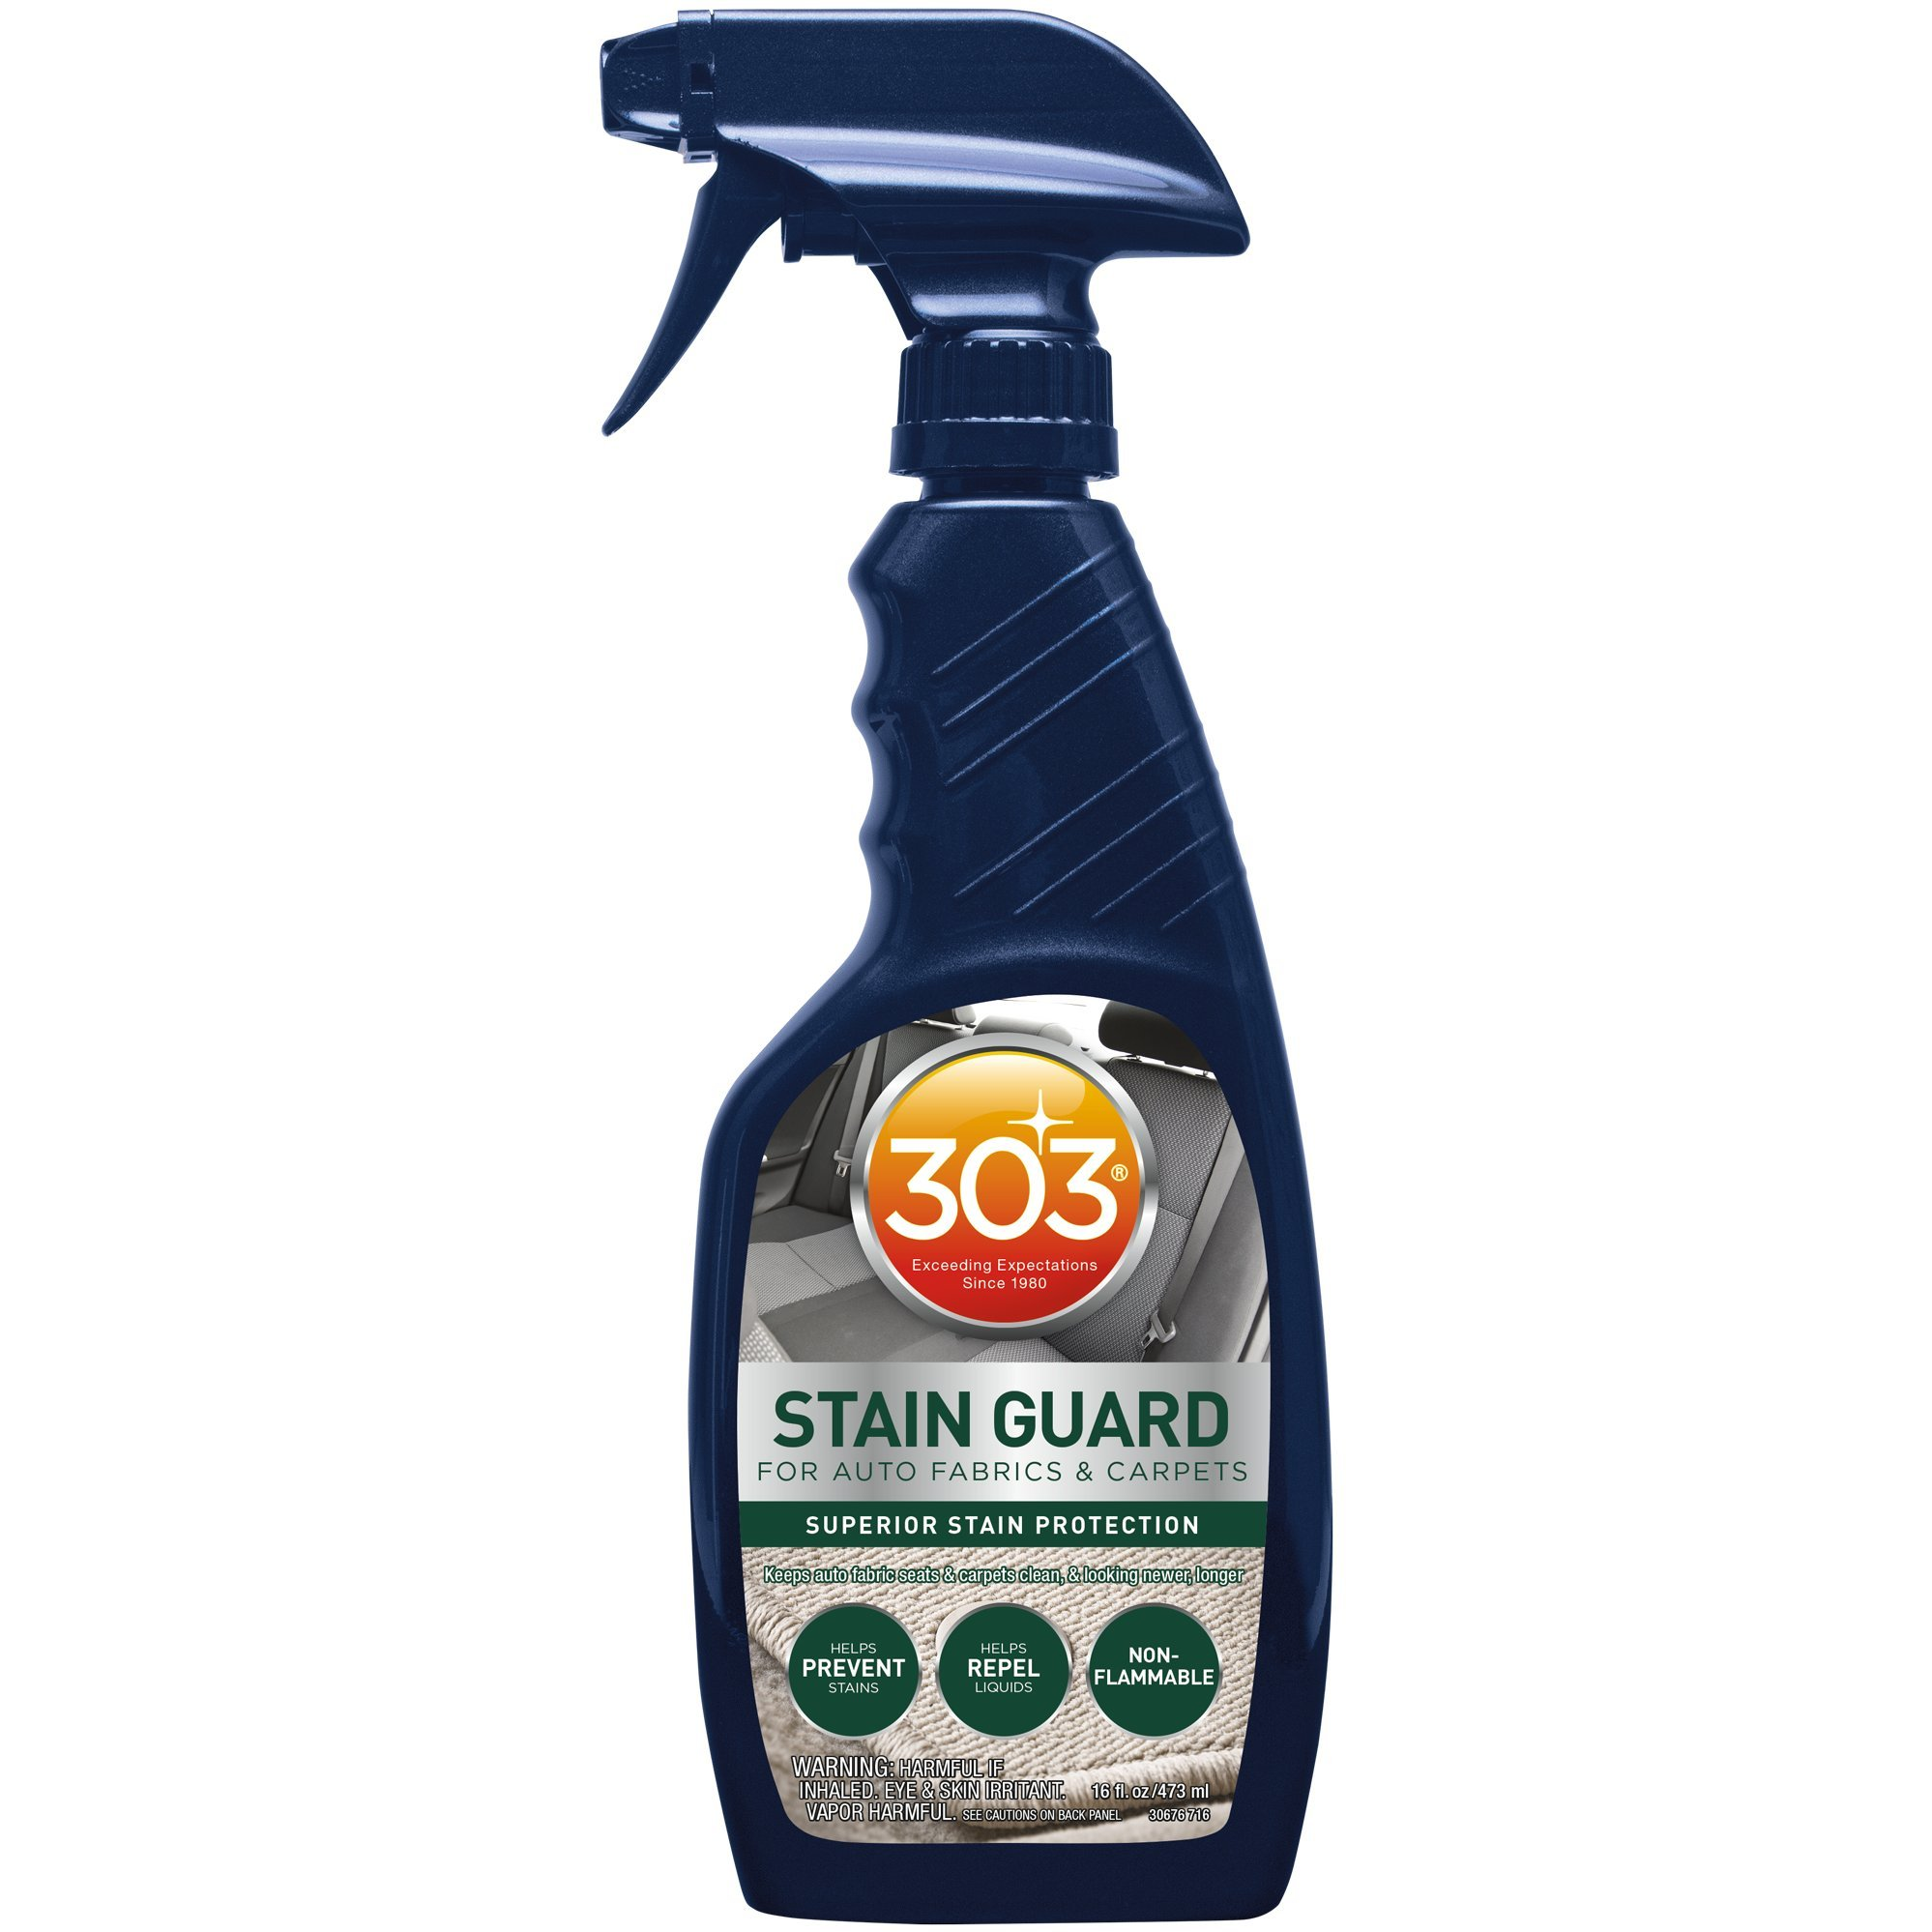 303 (30676-6PK) Fabric Protector and Stain Guard for Auto Interior Fabrics, Carpets and Floor Mats, 16 fl. oz., Pack of 6